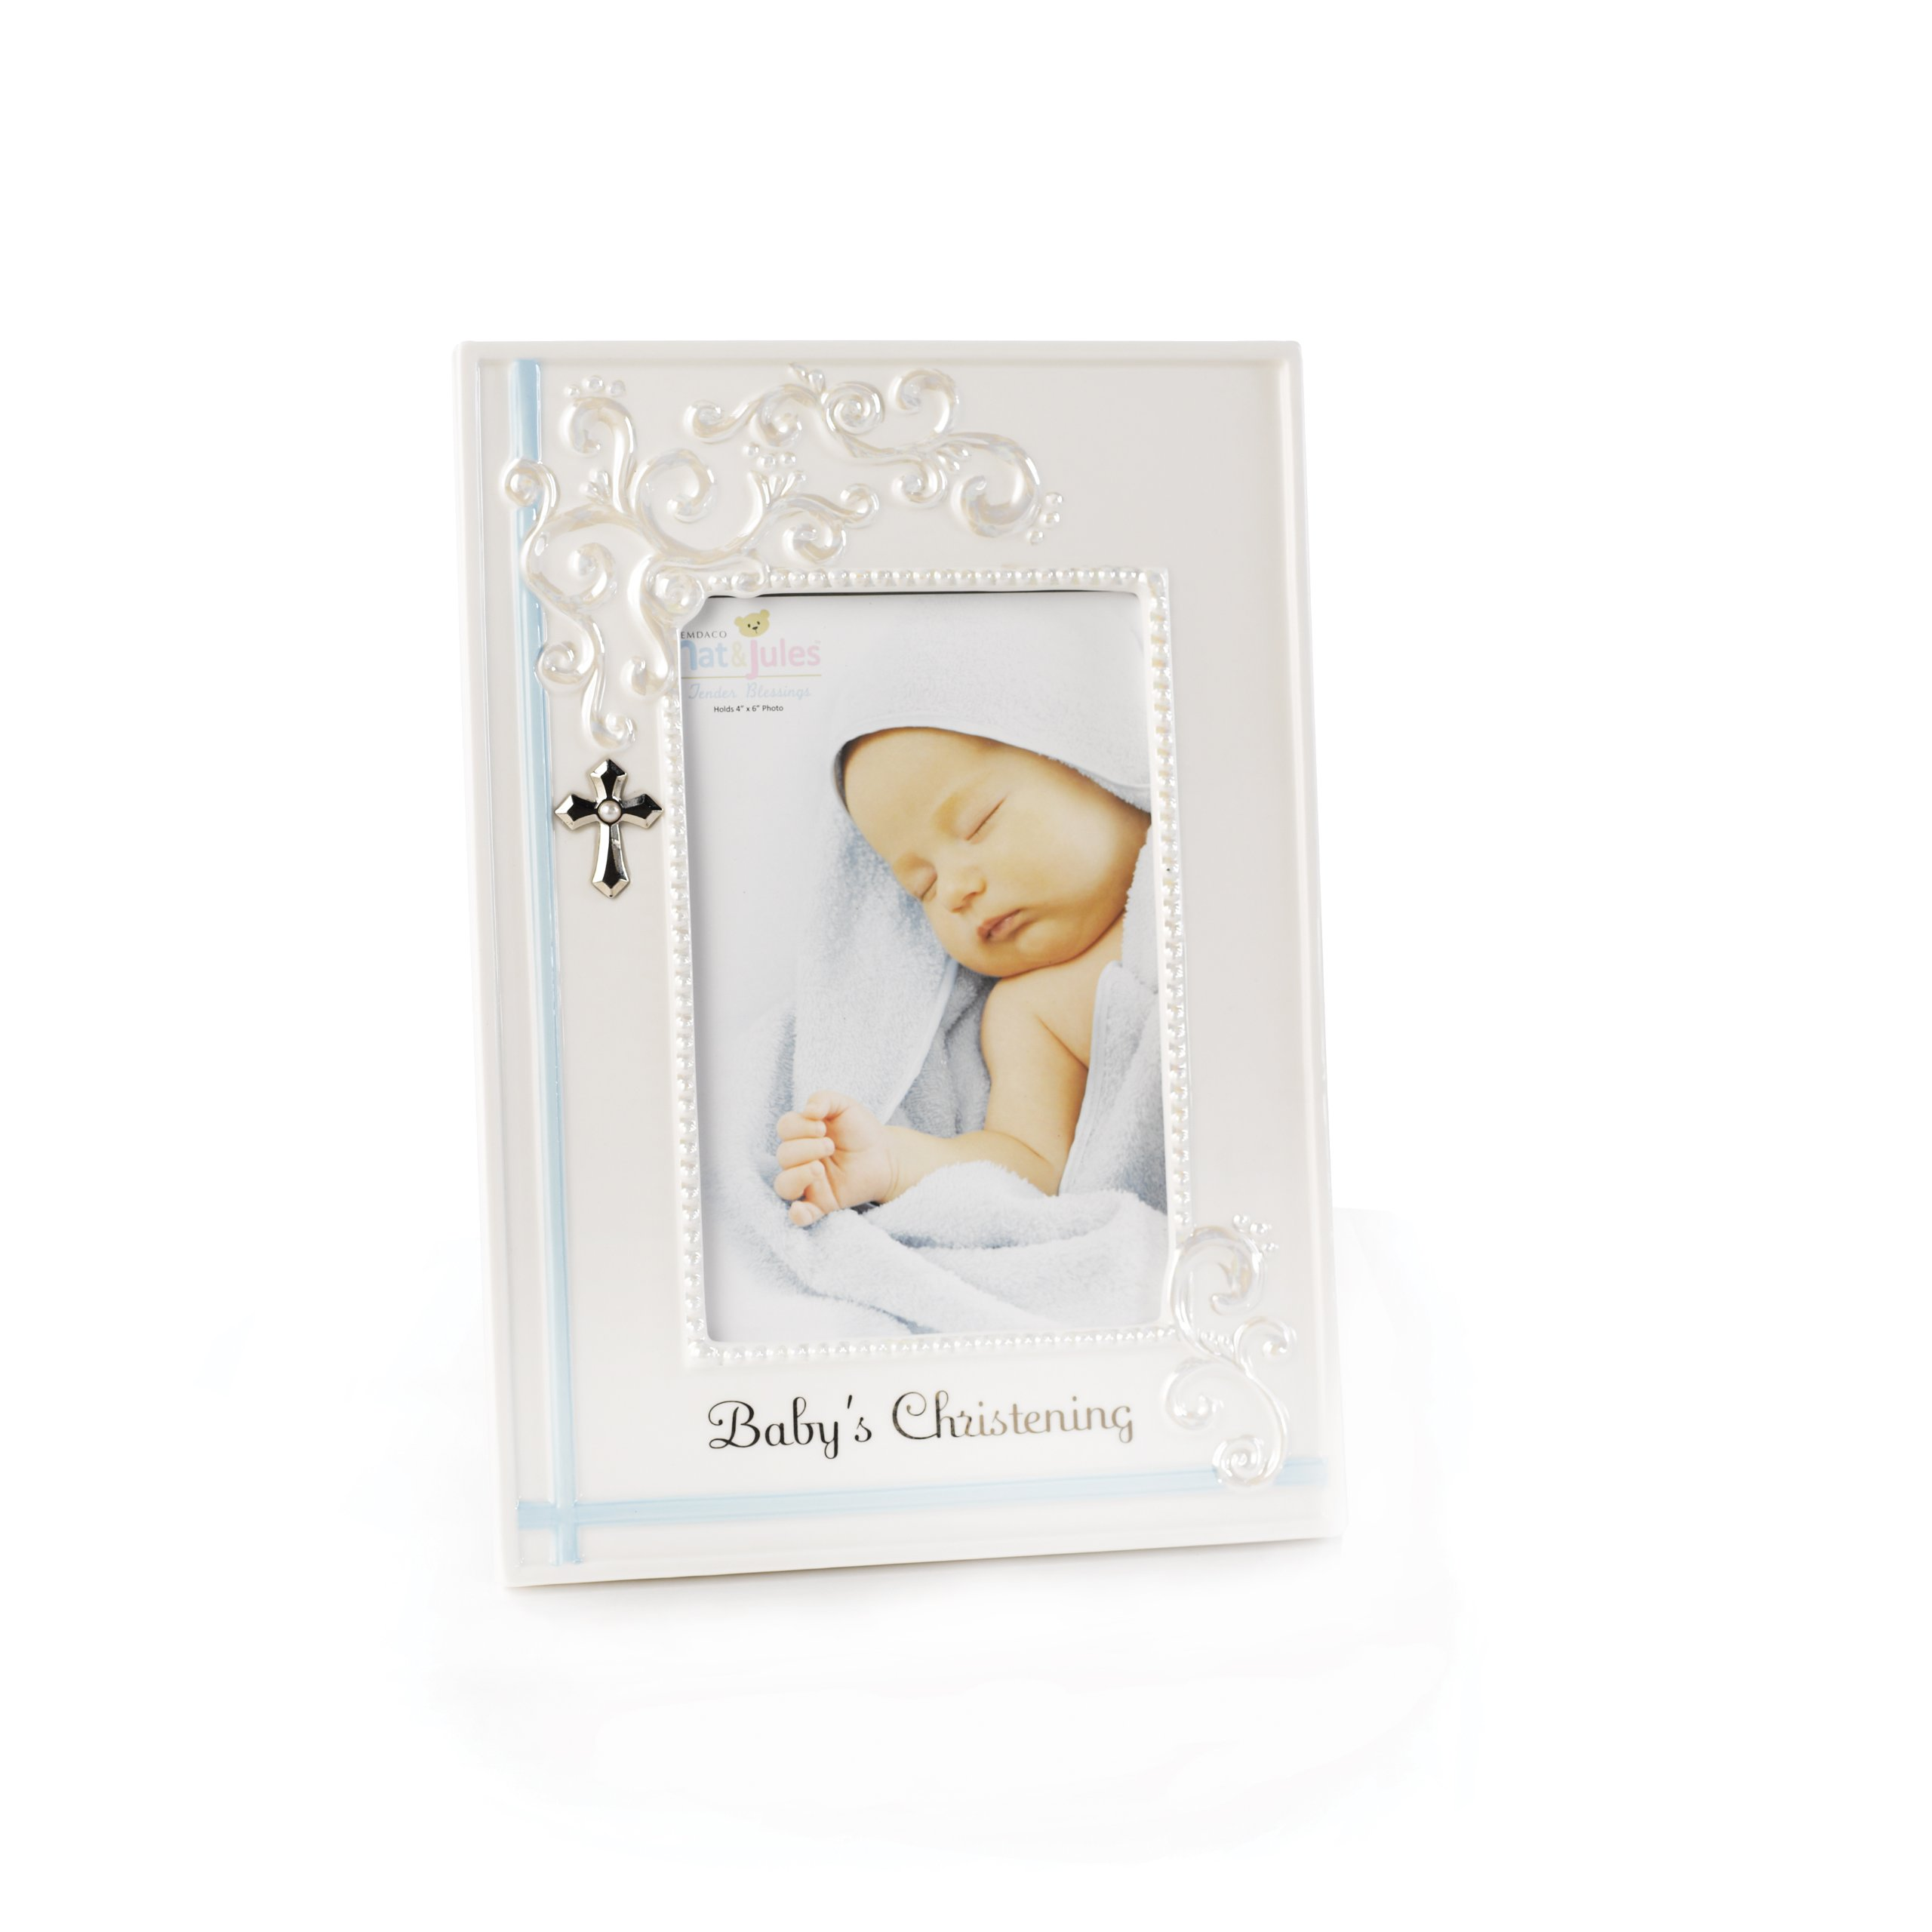 Nat and Jules Baby's Christening Frame, Blue by Nat and Jules (Image #1)